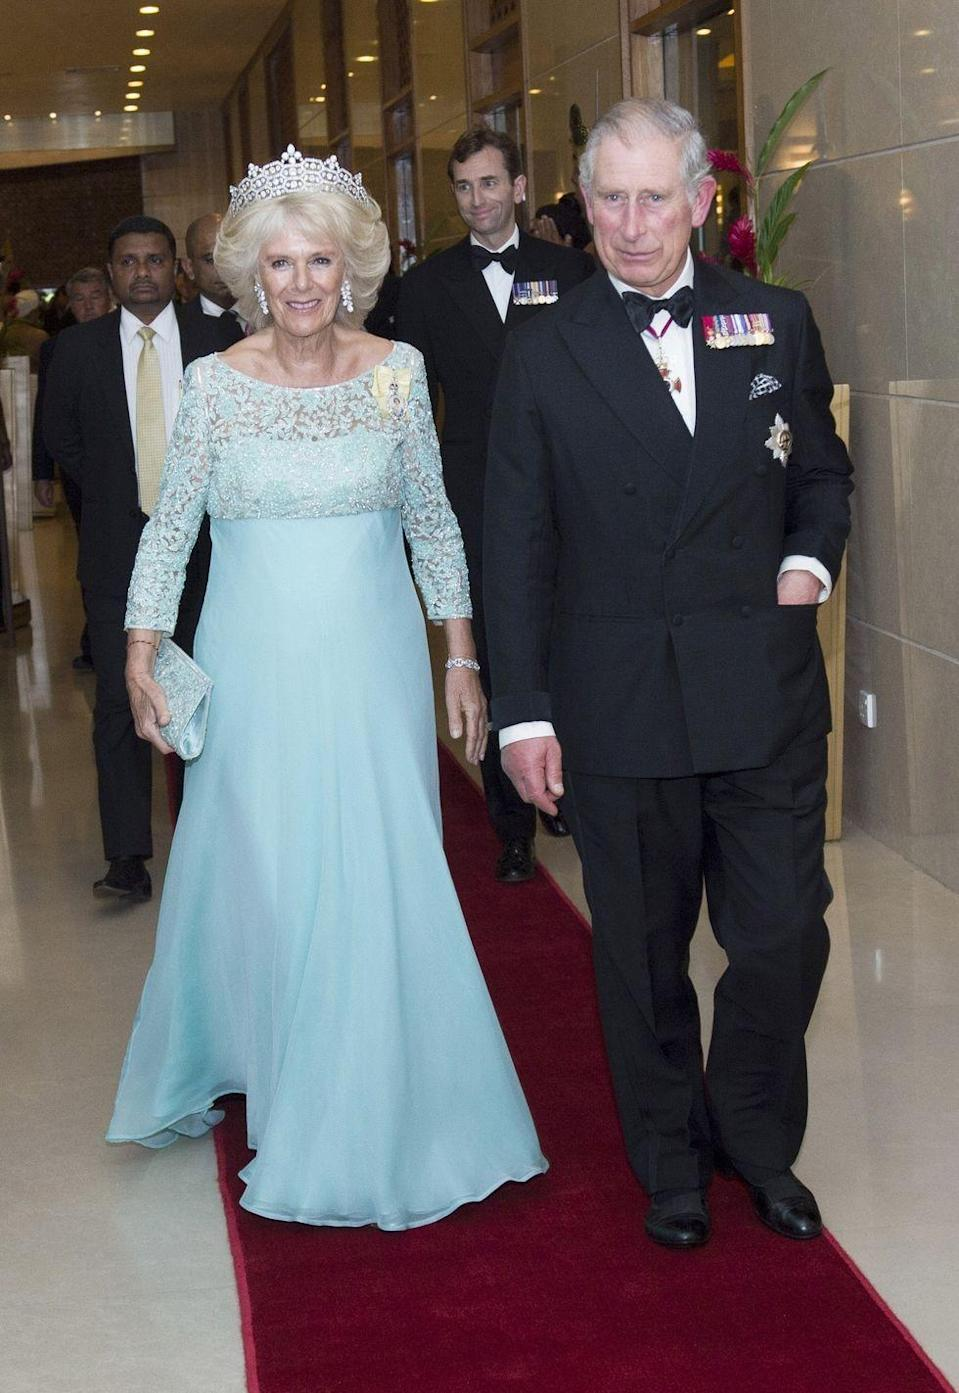 <p>Camilla wore a rick lace and chiffon gown in light blue along with a tiara for a welcome dinner for her and Prince Charles in Colombo, Sri Lanka. </p>